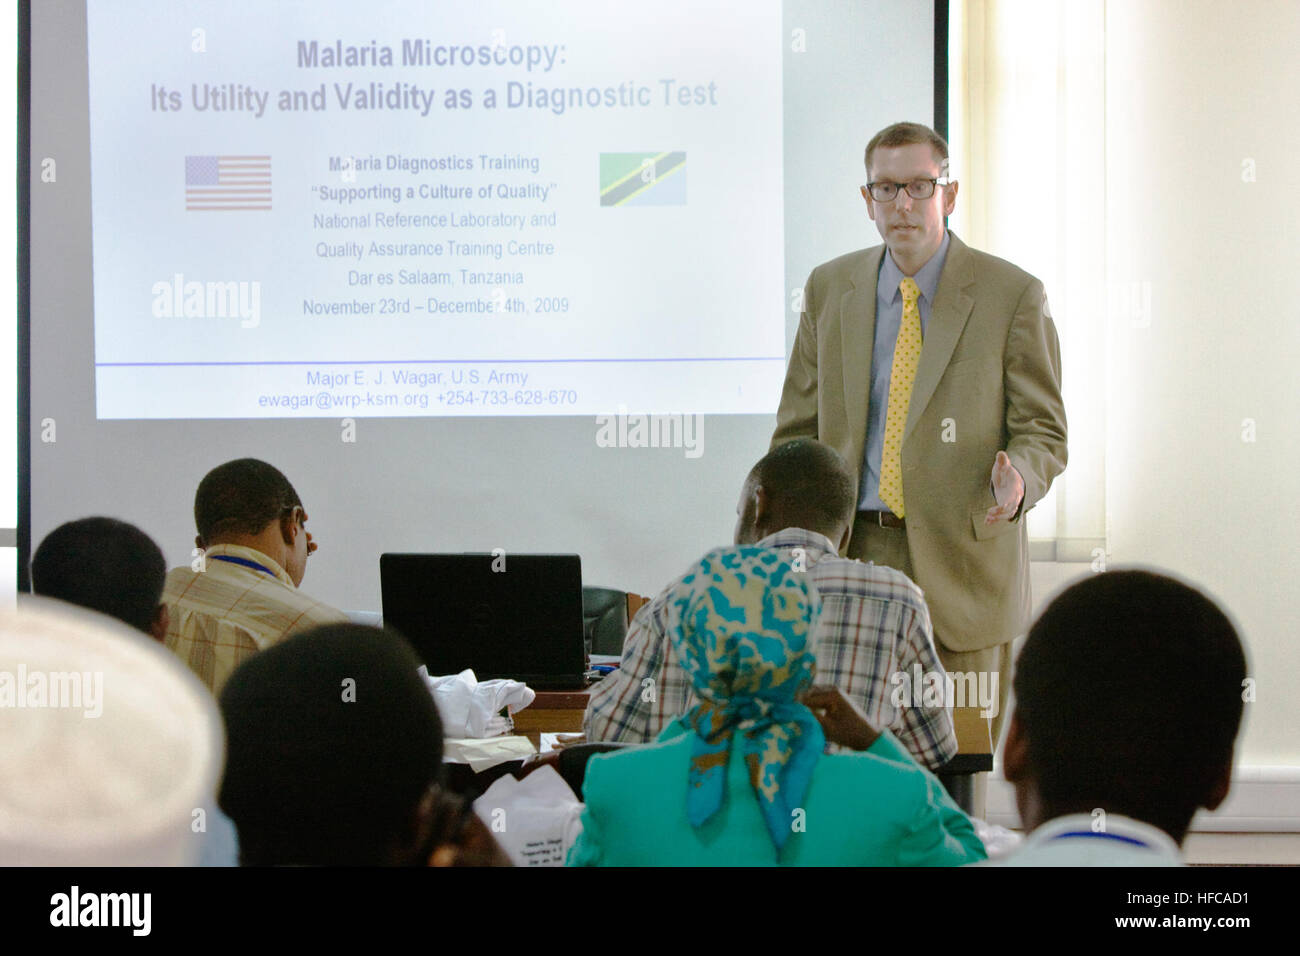 Major Eric J. Wagar with the U.S. Army Medical Research Unit-Kenya and The Walter Reed Project lectures on the malaria - Stock Image